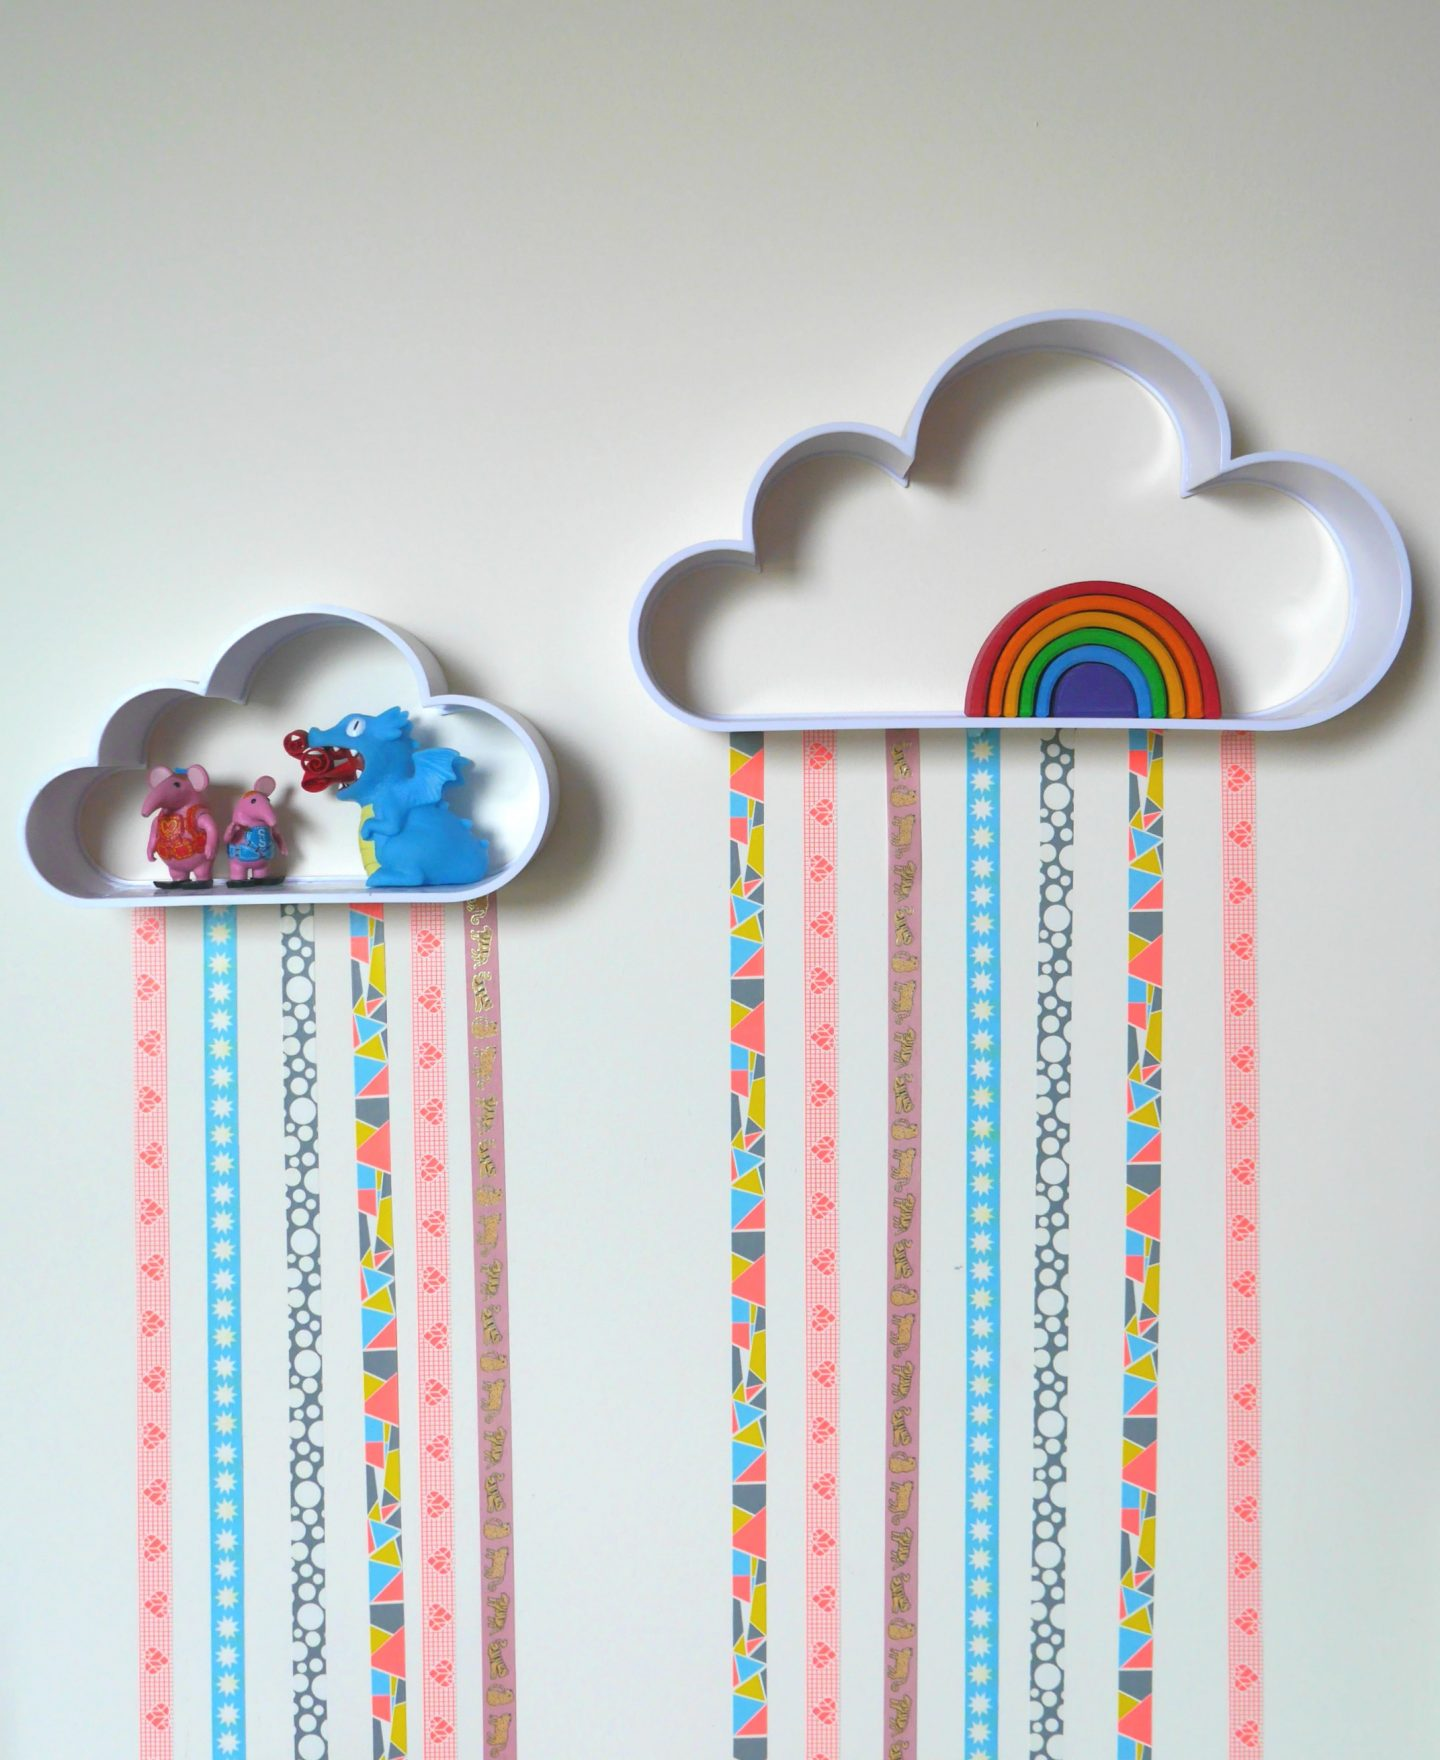 How to make easy cloud shelves with washi tape rain for children's rooms - easy #DIY #kidsrooms #interiors